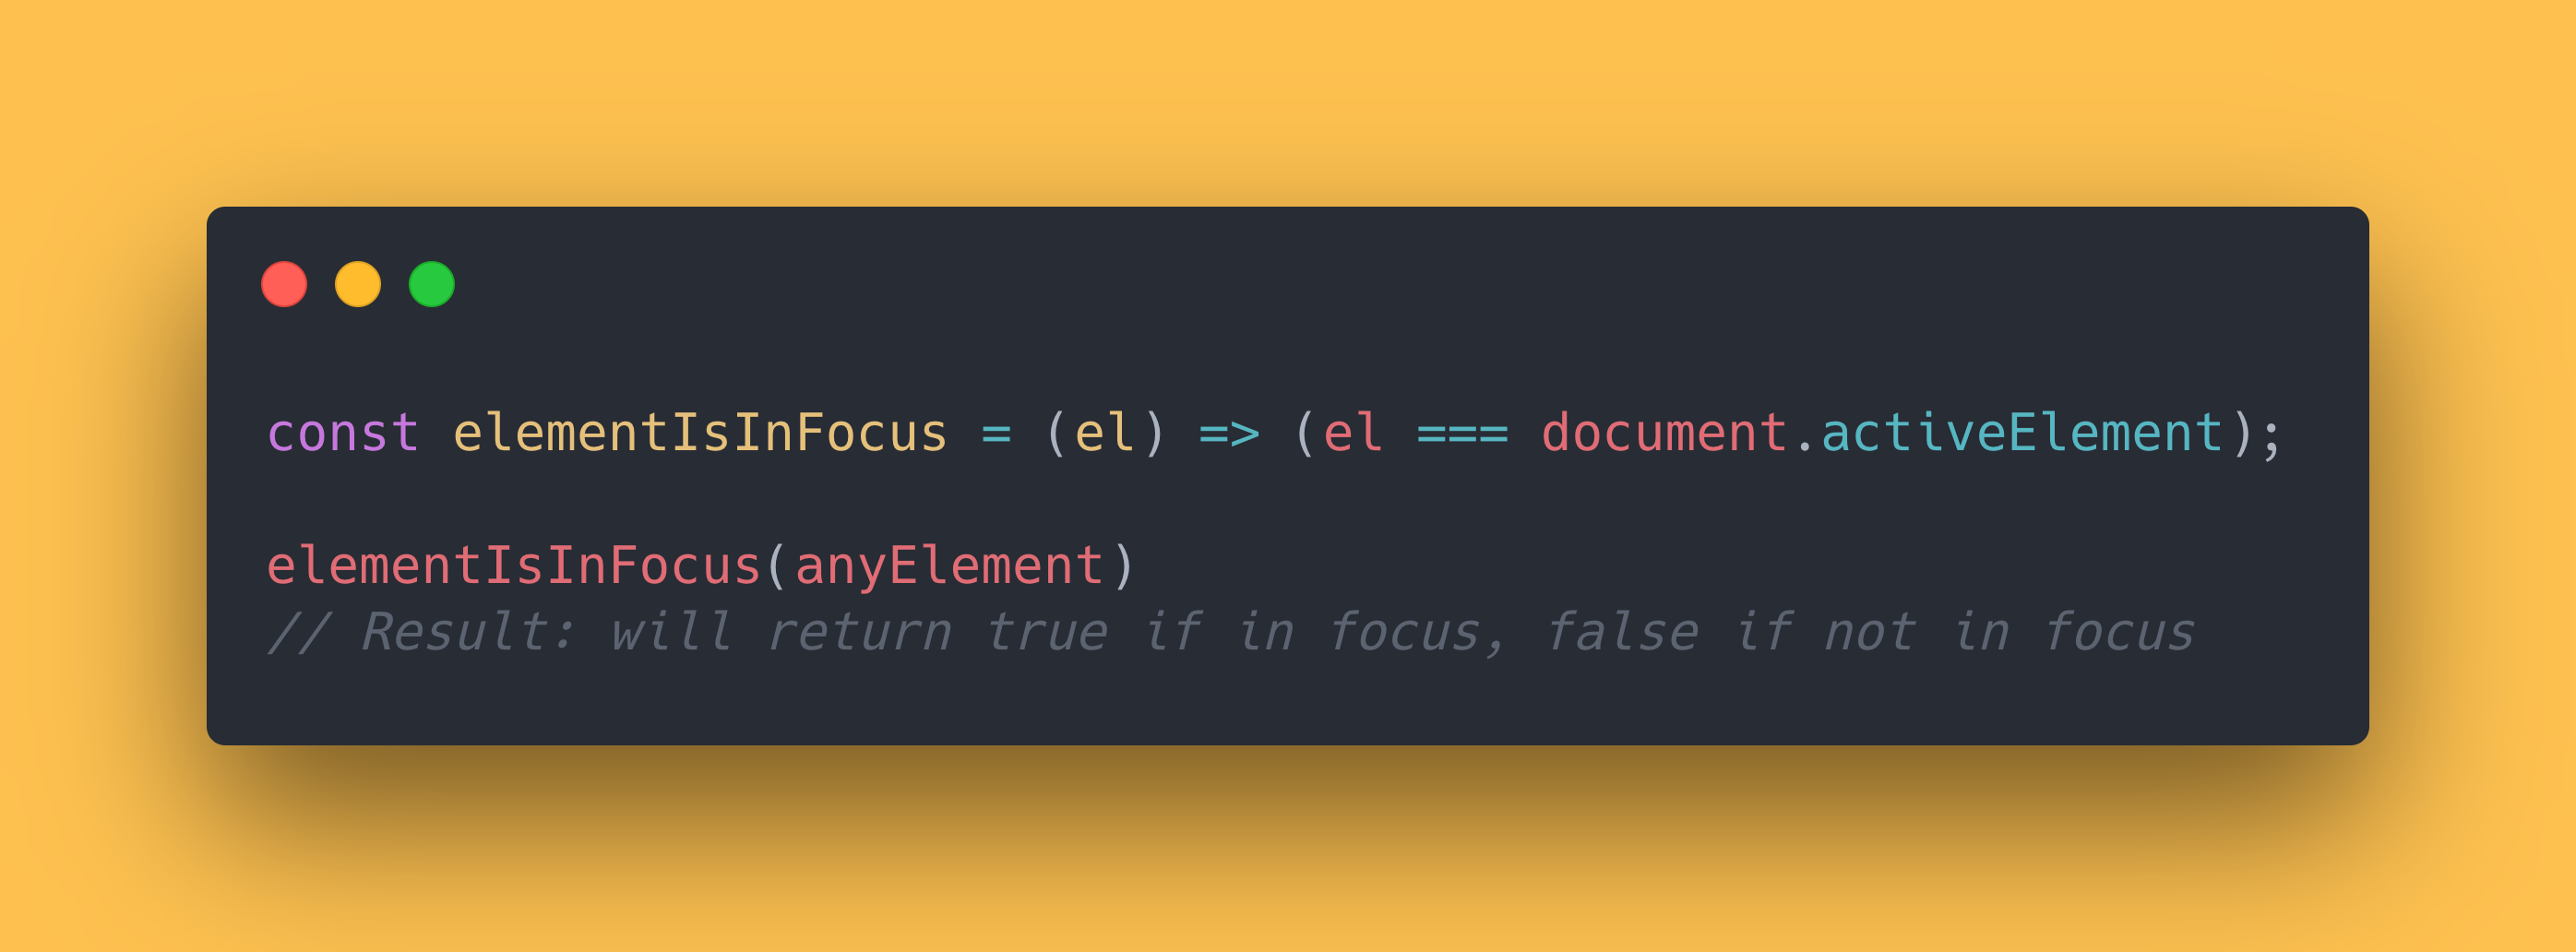 JS code showing how to check if an element is currently in focus using the activeElement property on the document object.